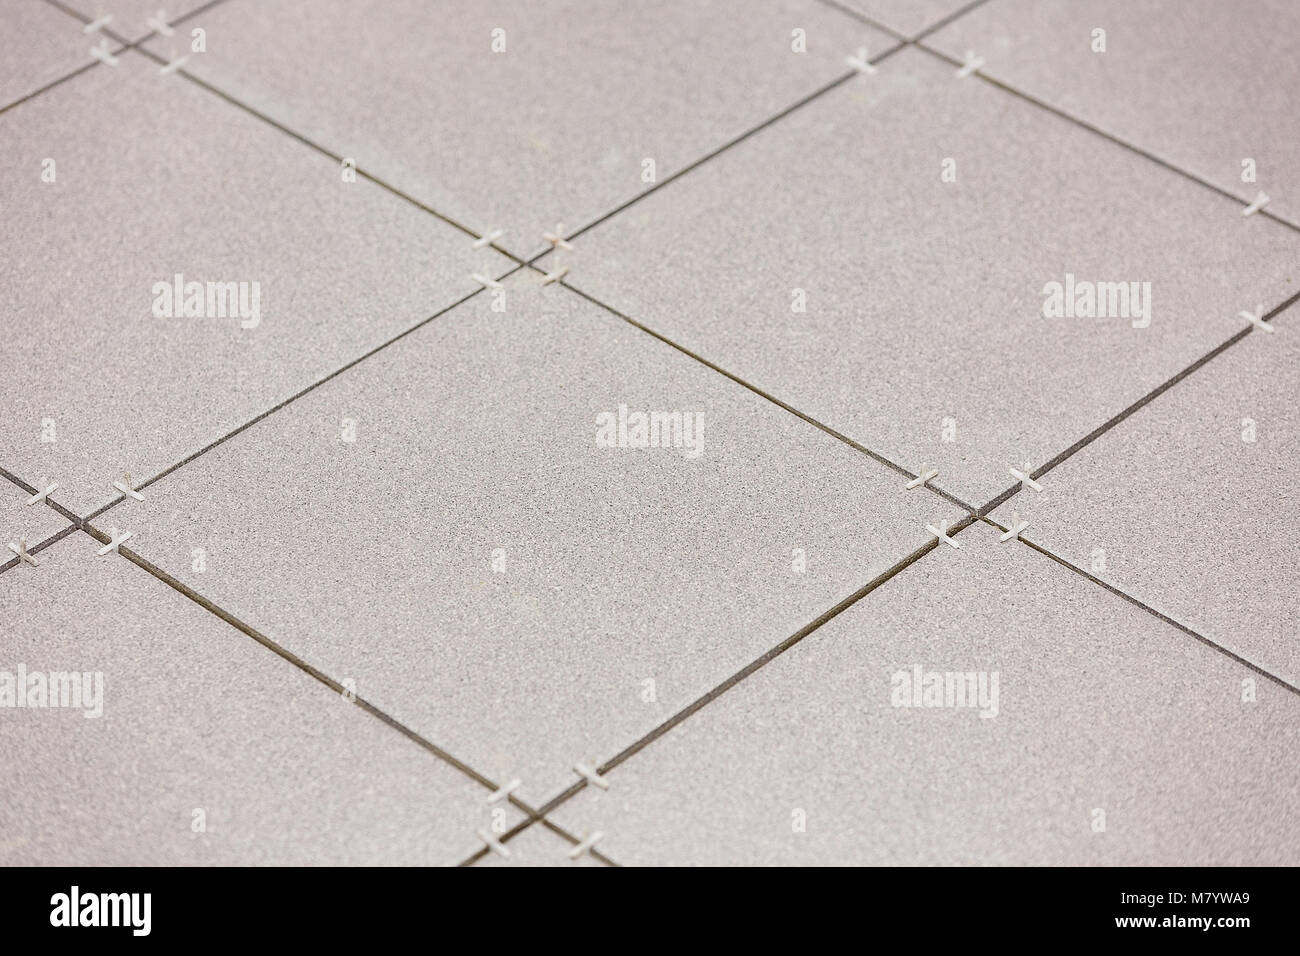 Fragment Of The Floor In The Process Of Laying Ceramic Tiles Stock